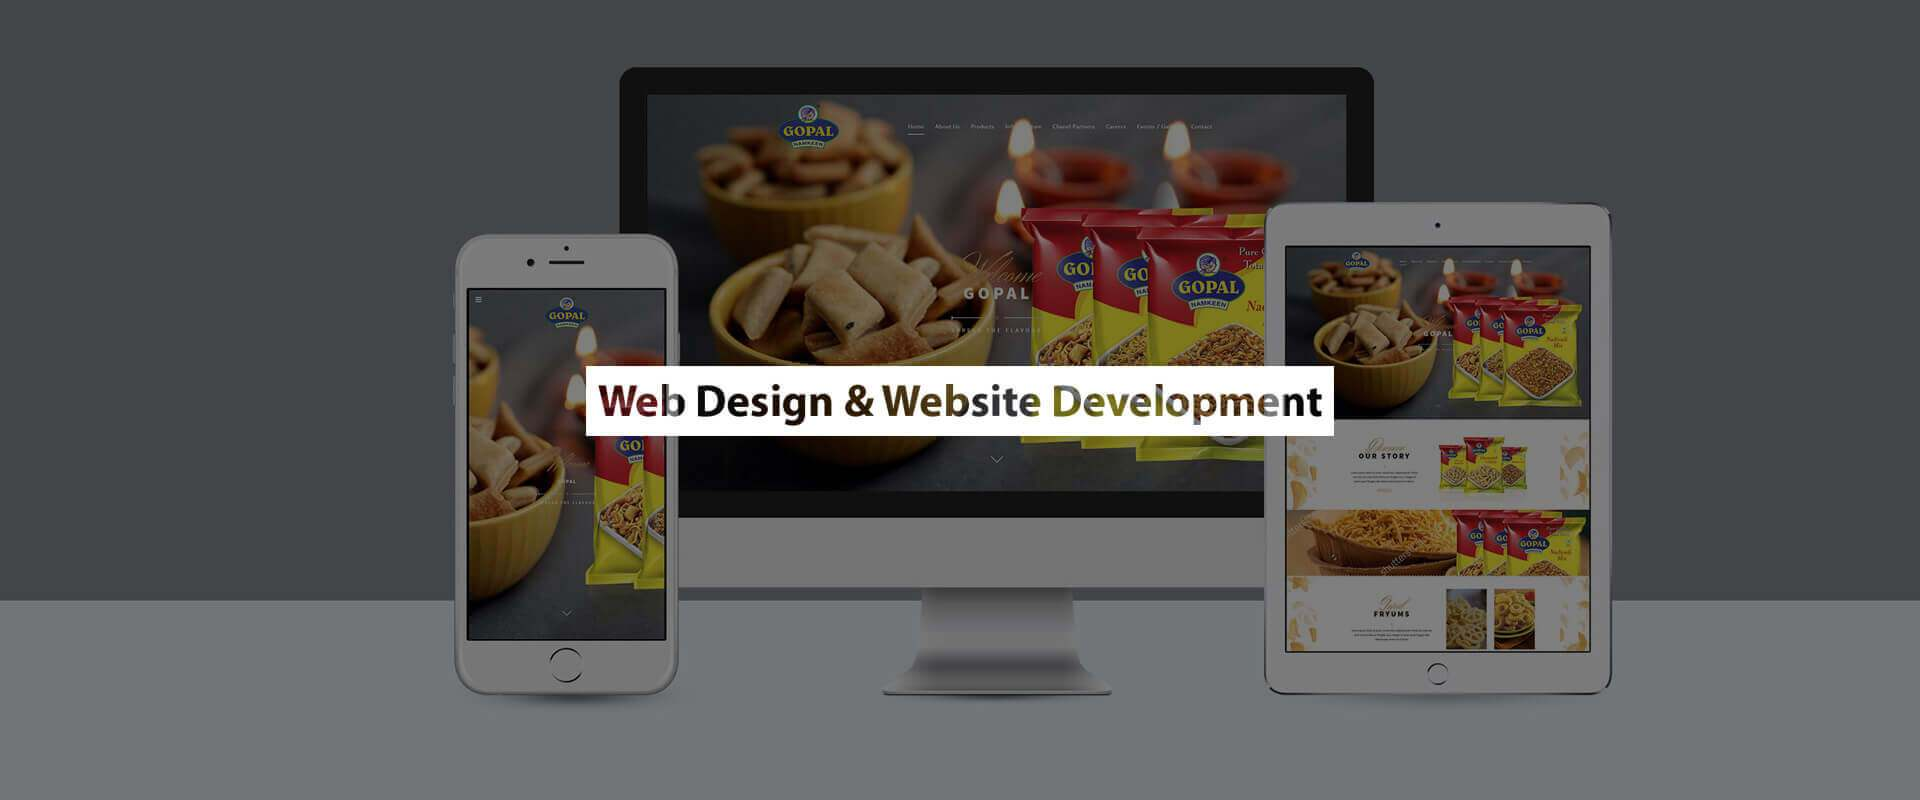 Web Design & Website Development